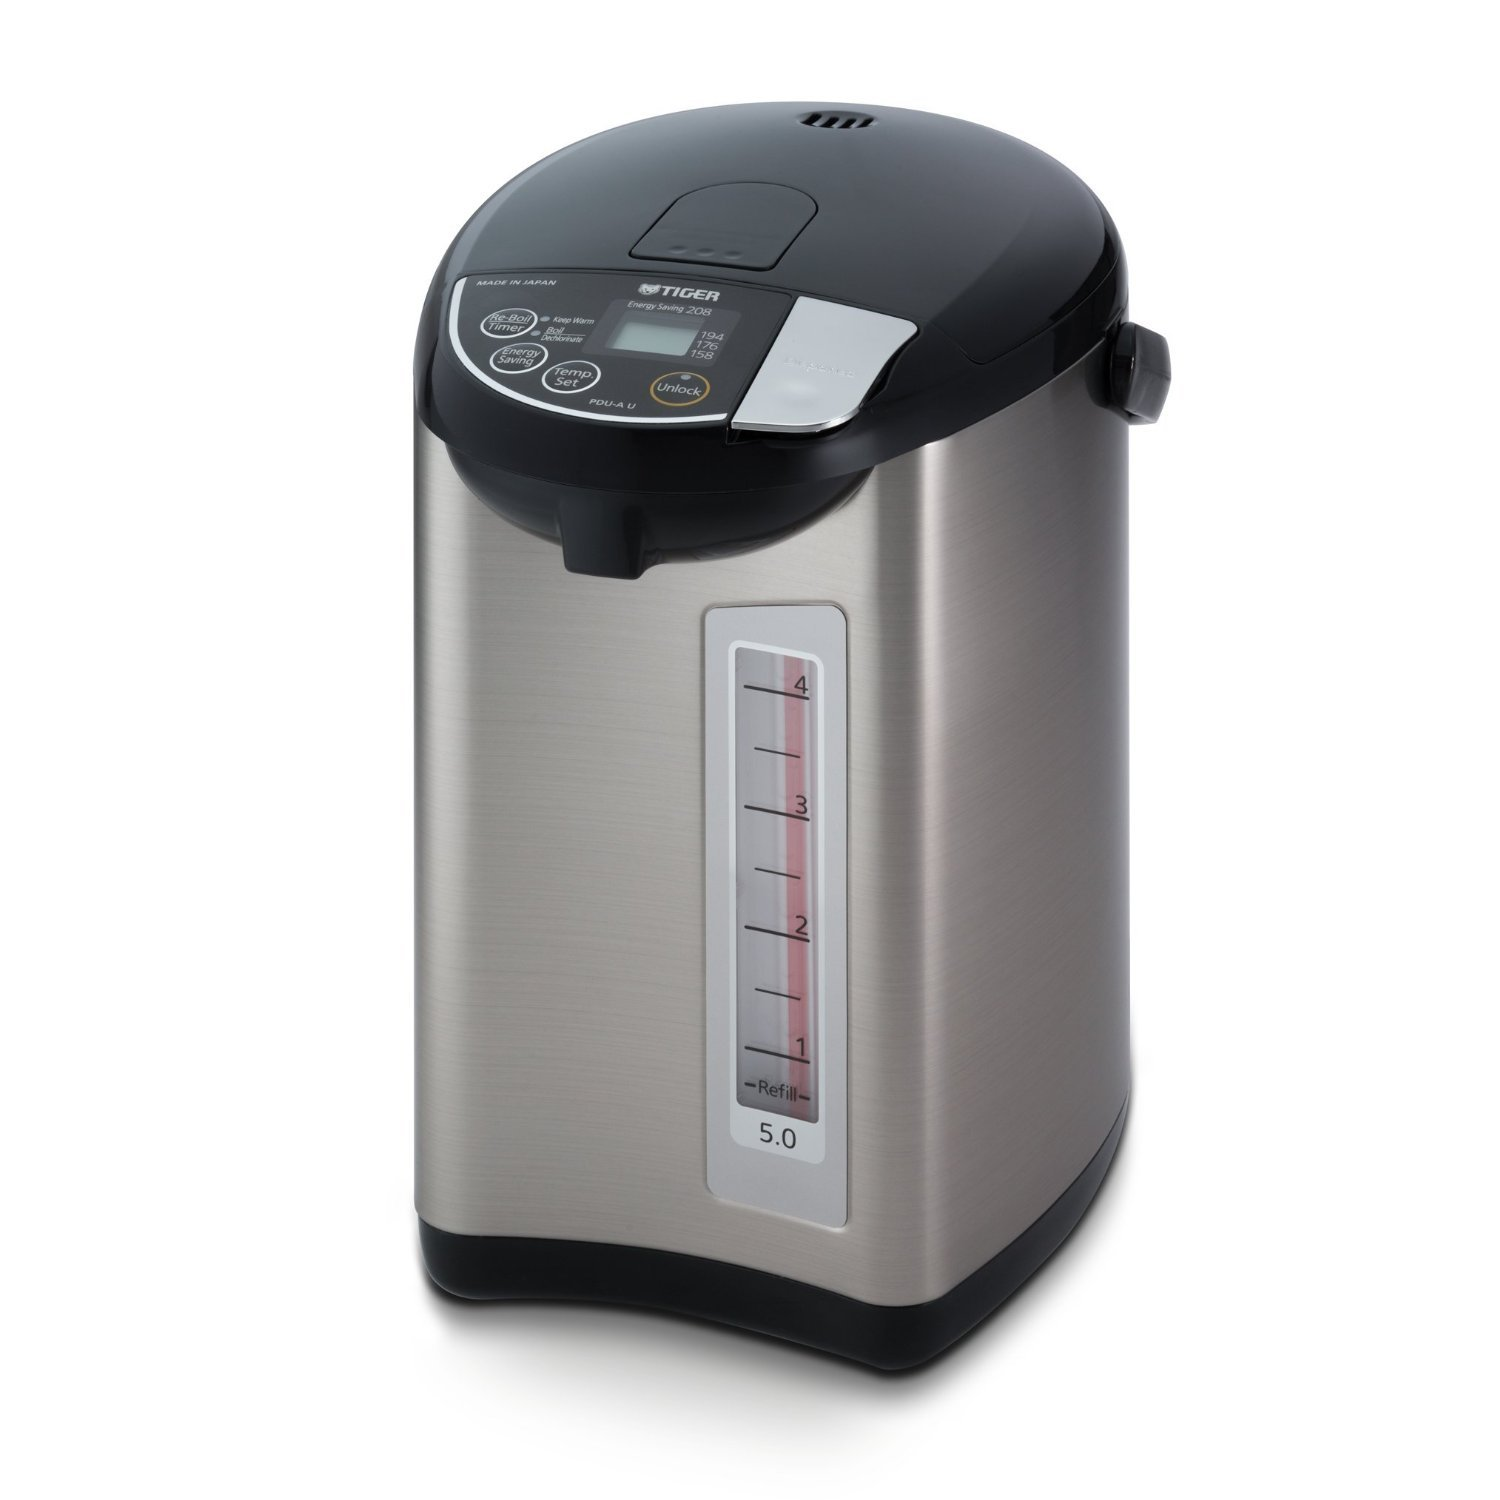 $209.98(was $234.61) Tiger PDU-A50U-K Electric Water Boiler and Warmer, Stainless Black, 5.0-Liter